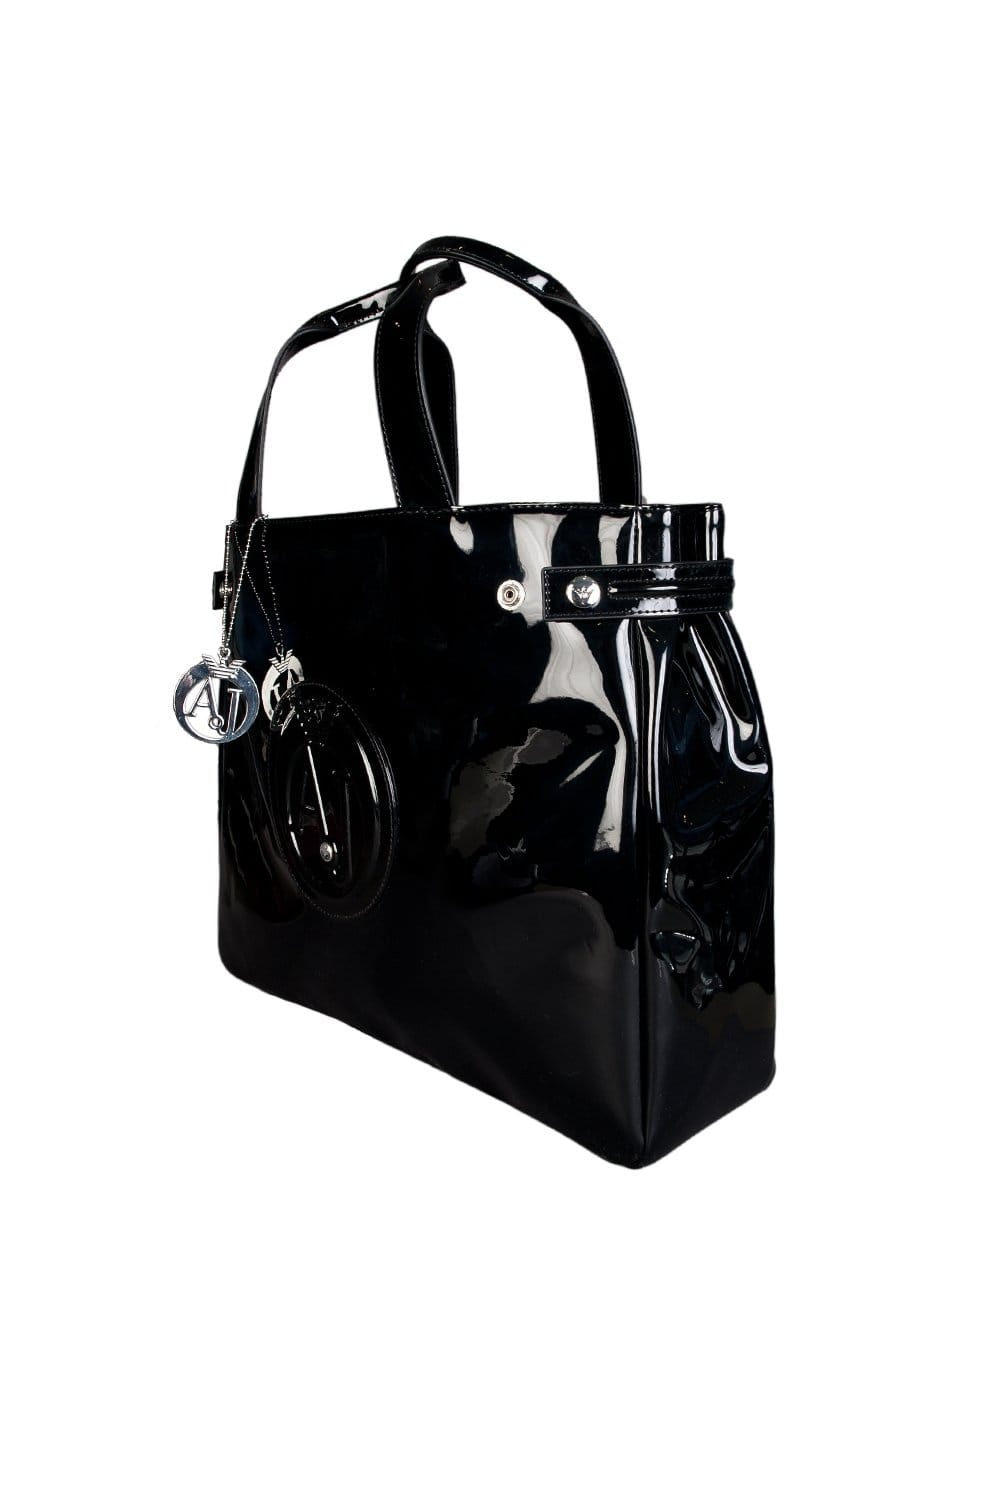 c9aa53bb Armani Jeans Ladies Patent Leather Look Shopping Bag in Black 0524655